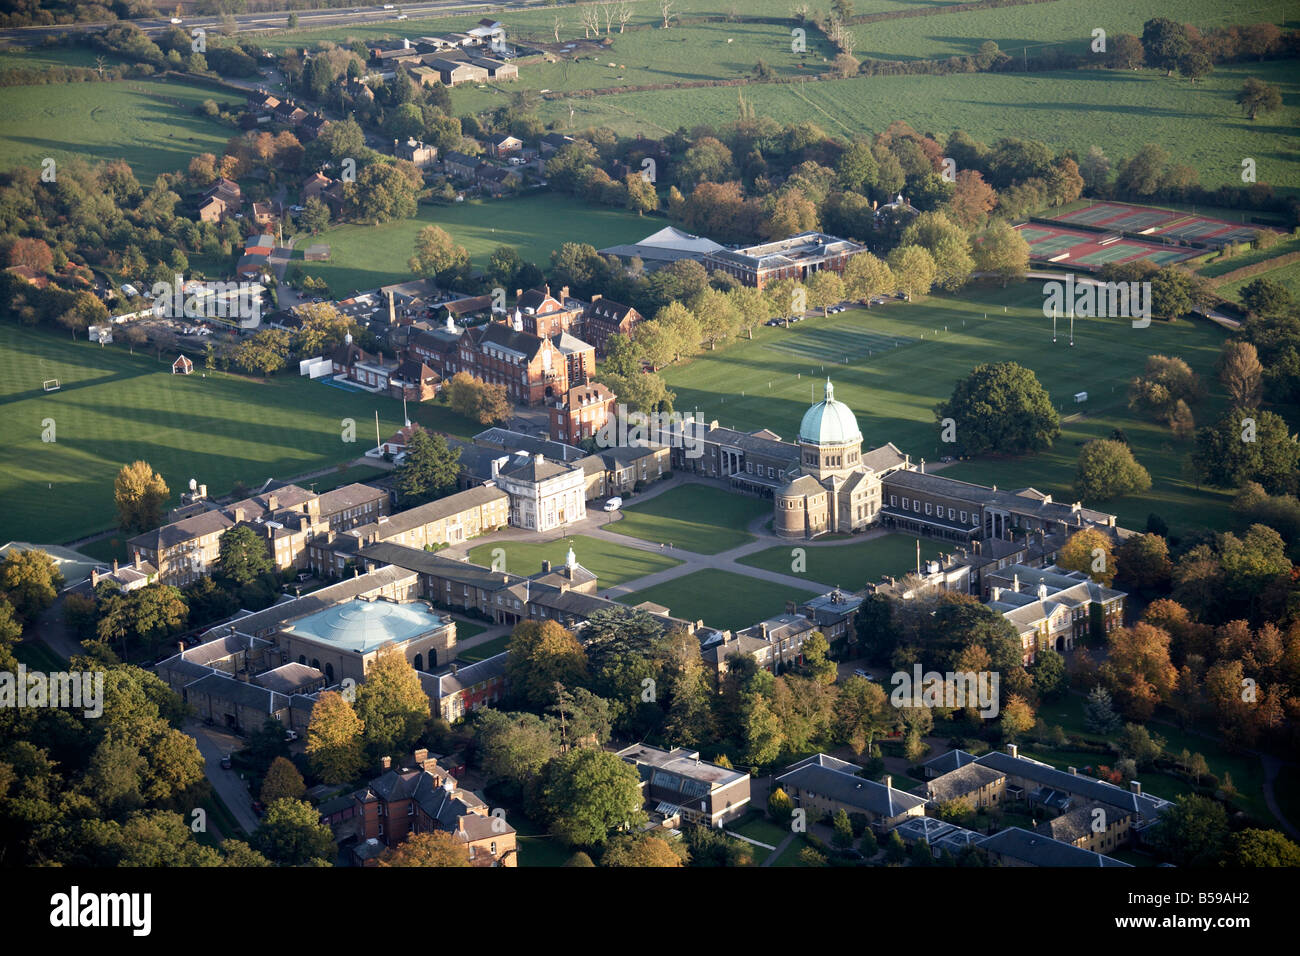 Aerial view south east of Haileybury College playing fields trees tennis courts suburban houses Hertfordshire SG13 - Stock Image